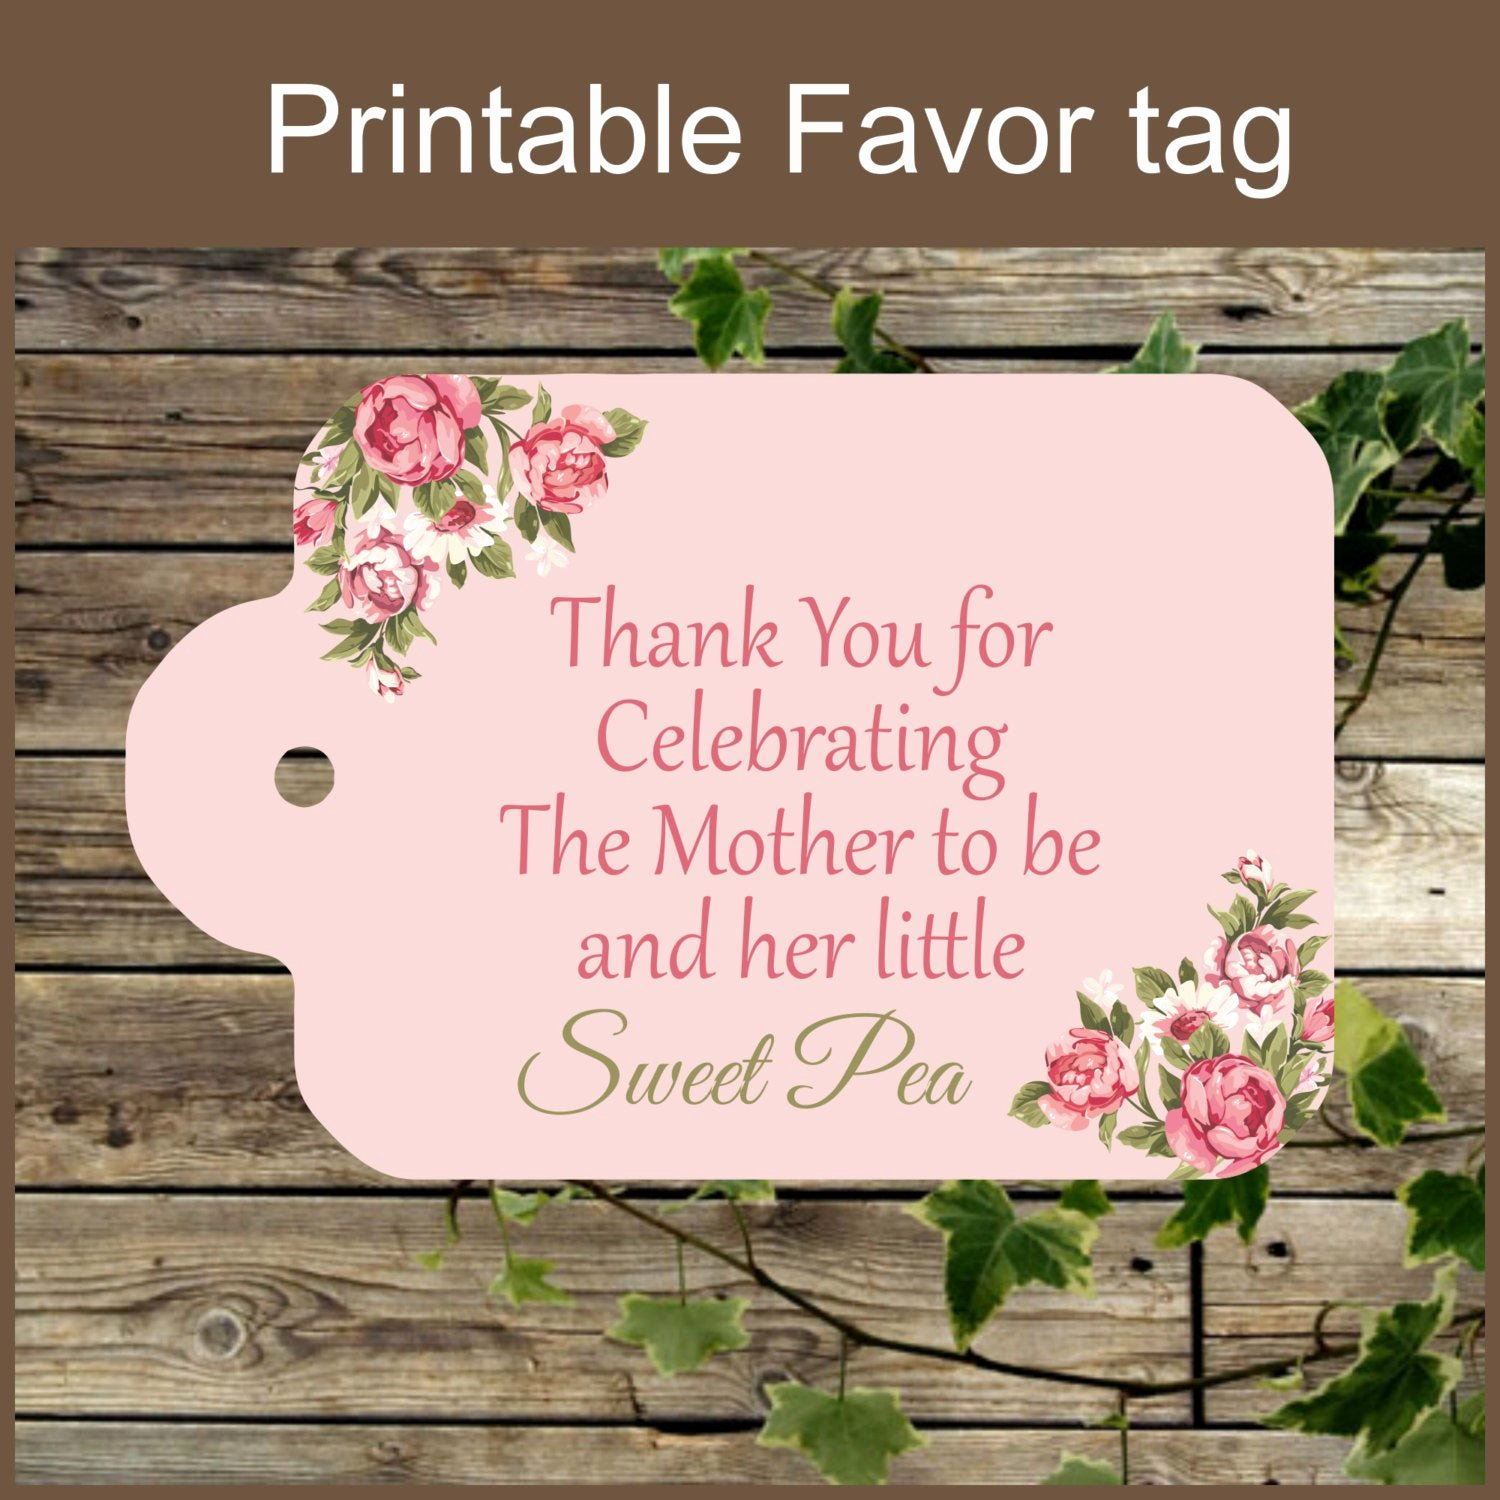 Printable Baby Shower Favor Tags New Pink Floral Baby Shower Printable Favor Tag Sweet Pea Baby